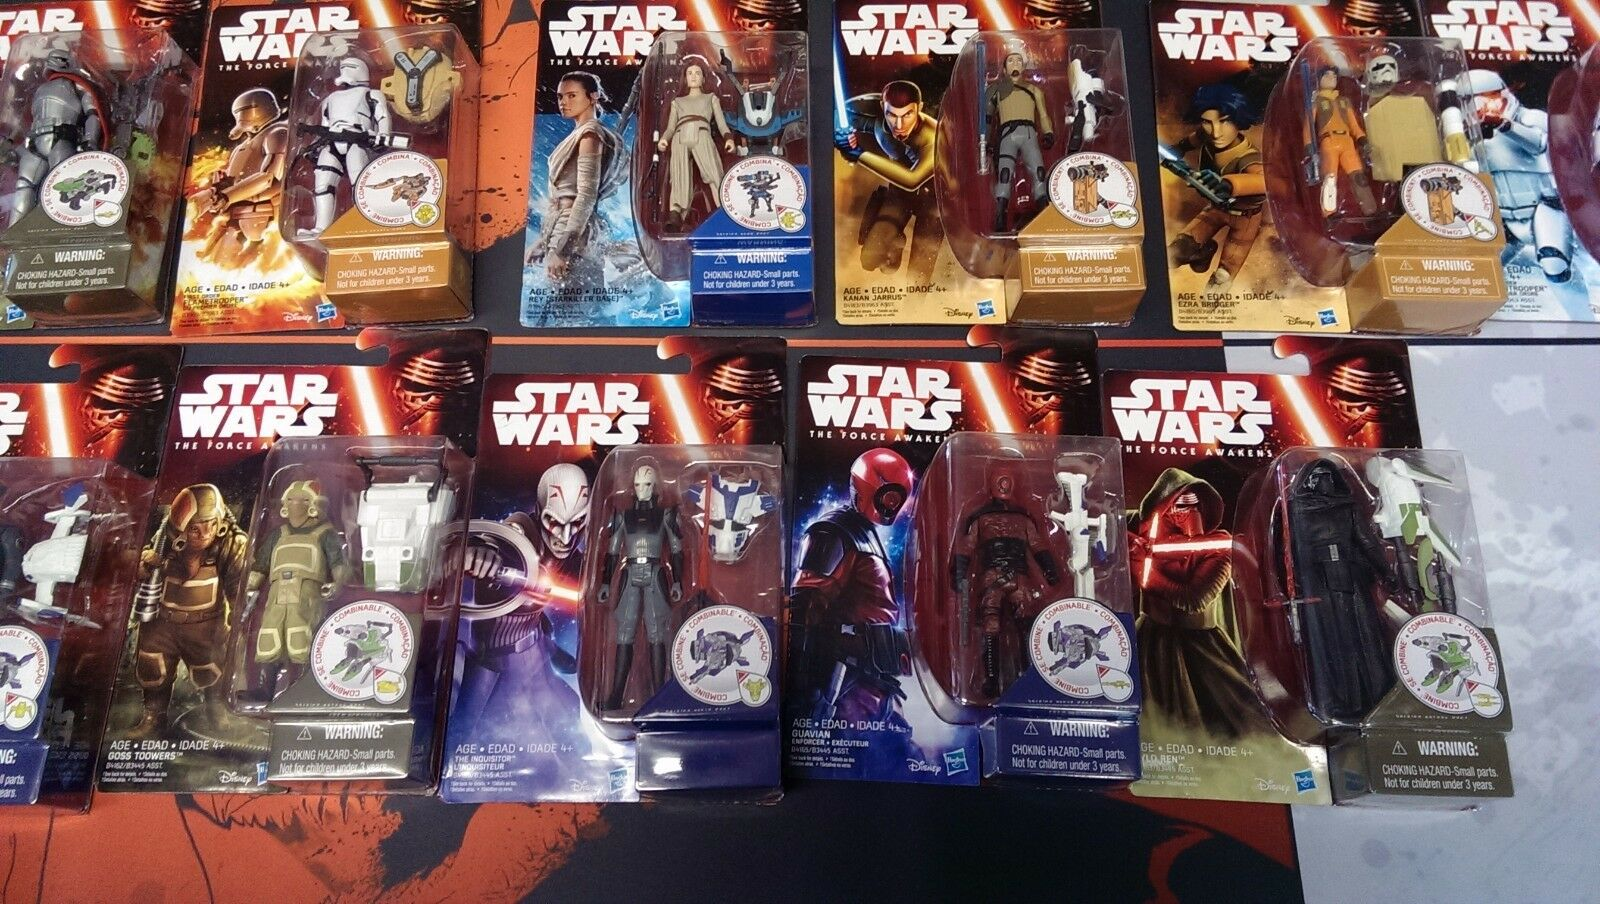 13 STAR WARS carded action action action figures - The Force Awakes - Luke, Darth Vader, Rey 9c20f2